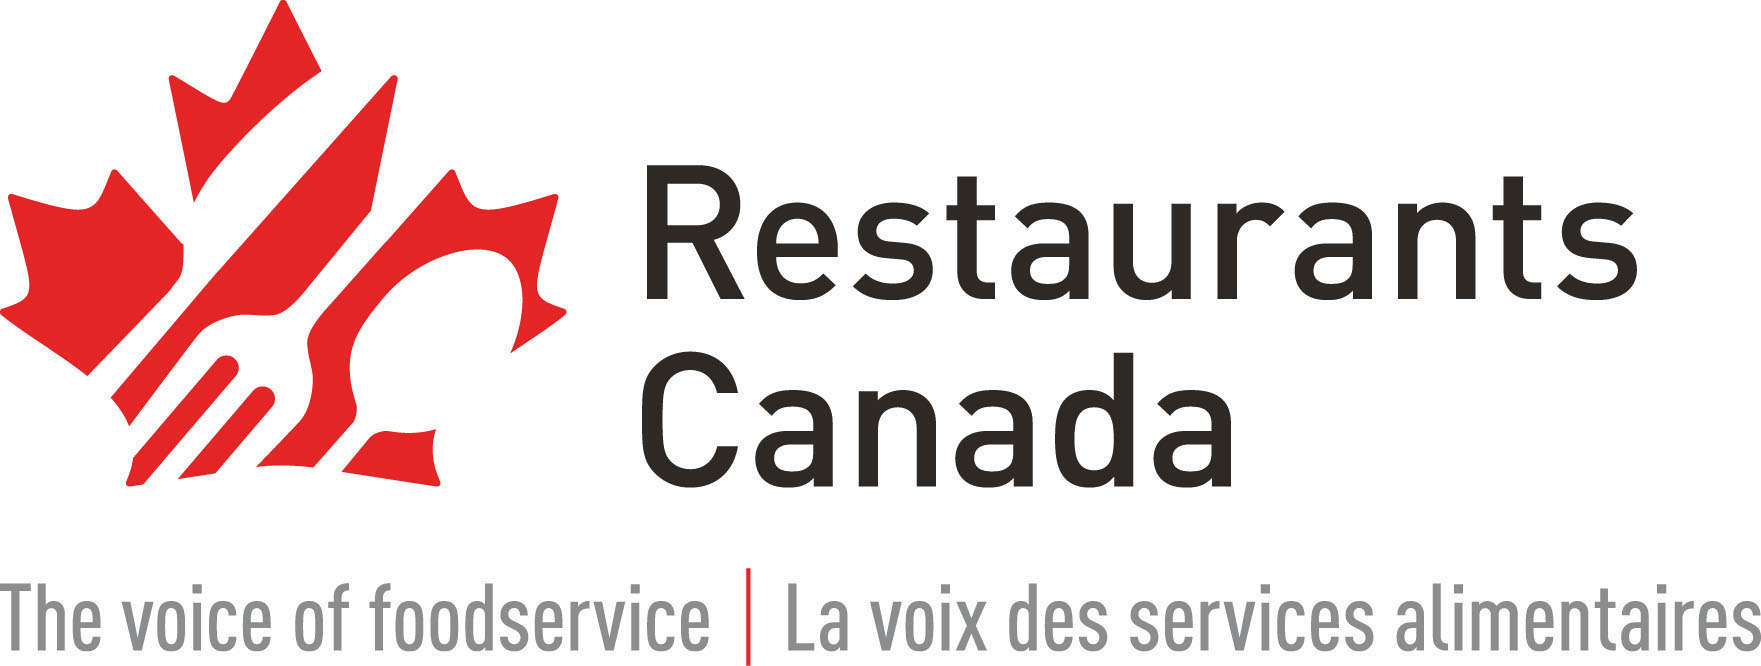 COVID-19 has cost Quebec's foodservice sector more than 175,000 jobs since March 1